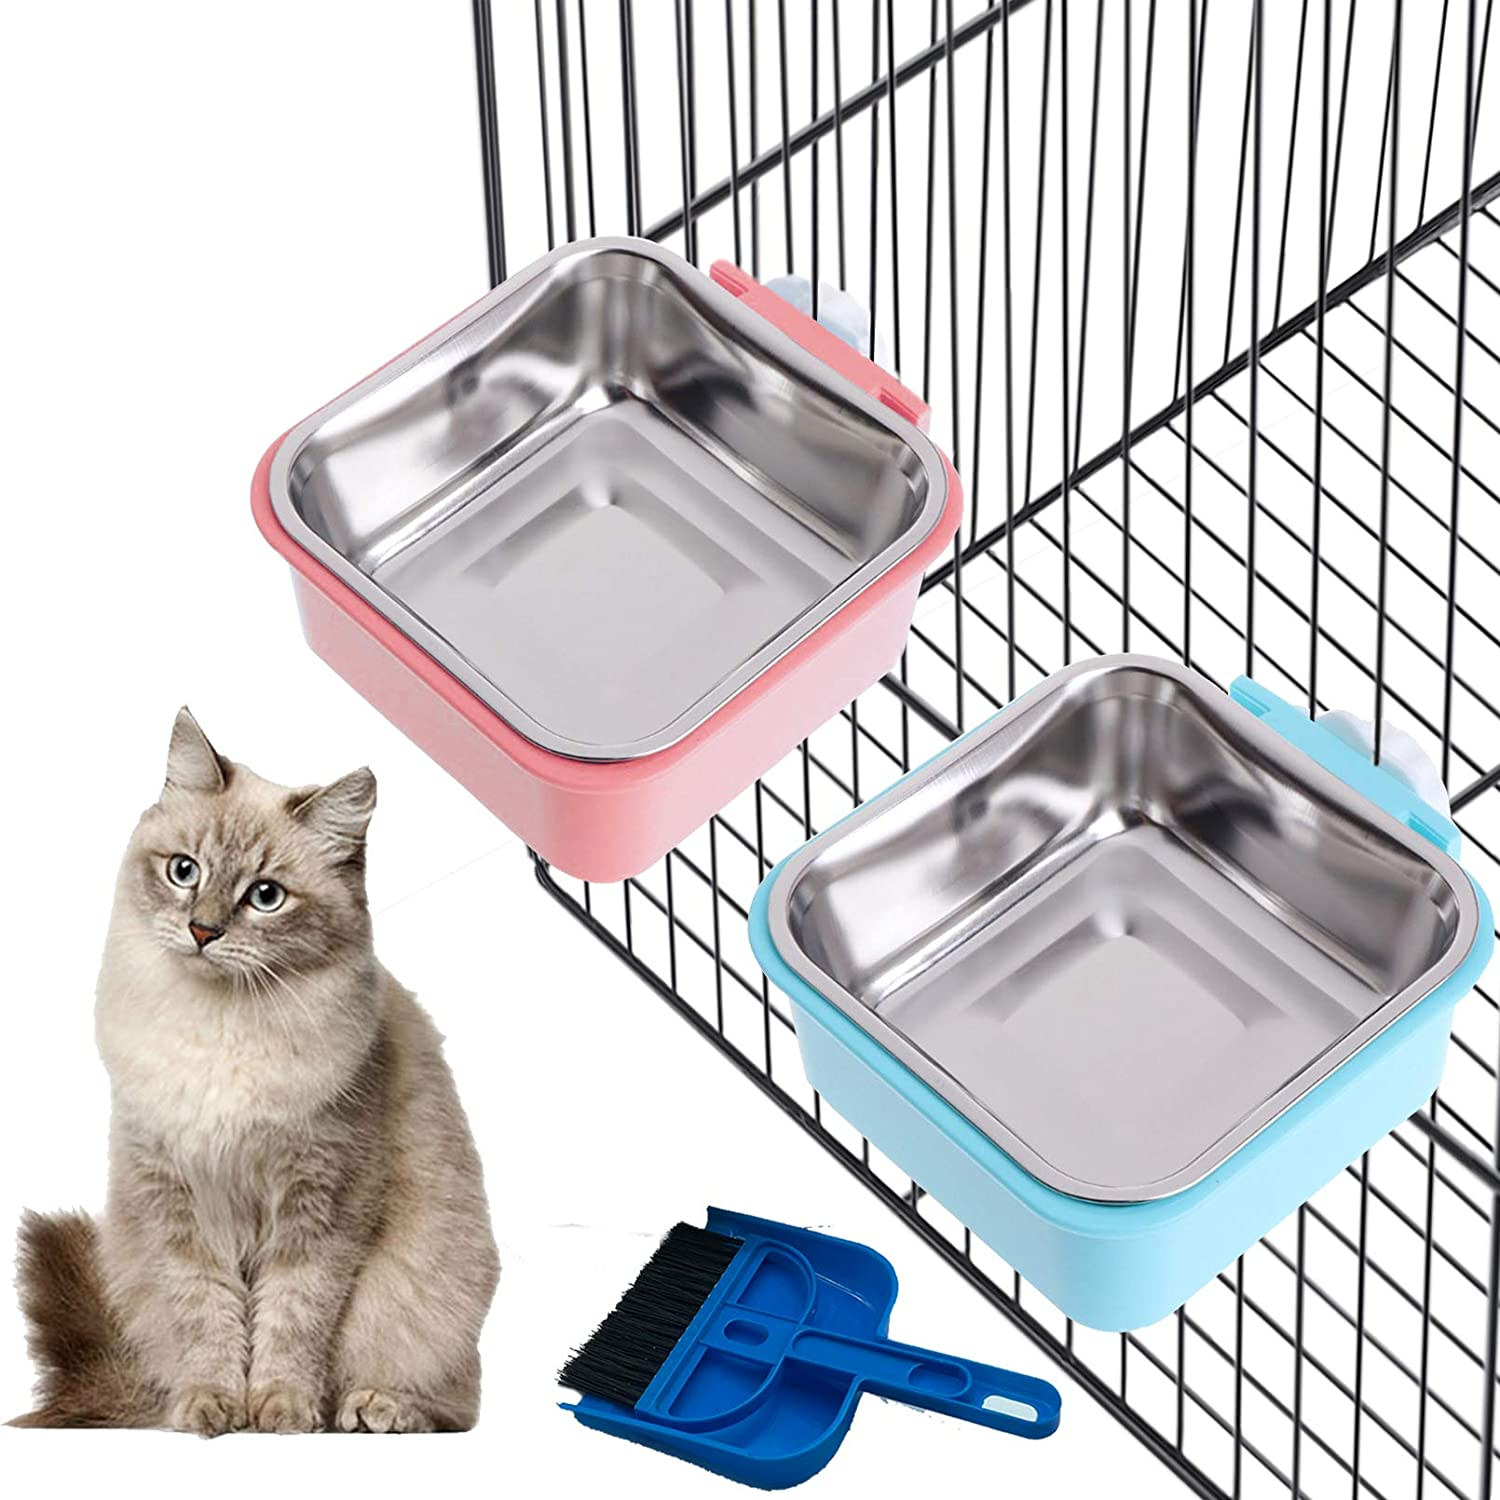 Tfwadmx Cat Food Bowl for Cage,Small Pet Hanging Removable Water Dish Feeding Cup with Holder Small Cleaning Broom Set for Dog Puppy Rabbit Chinchilla Guinea Pig.